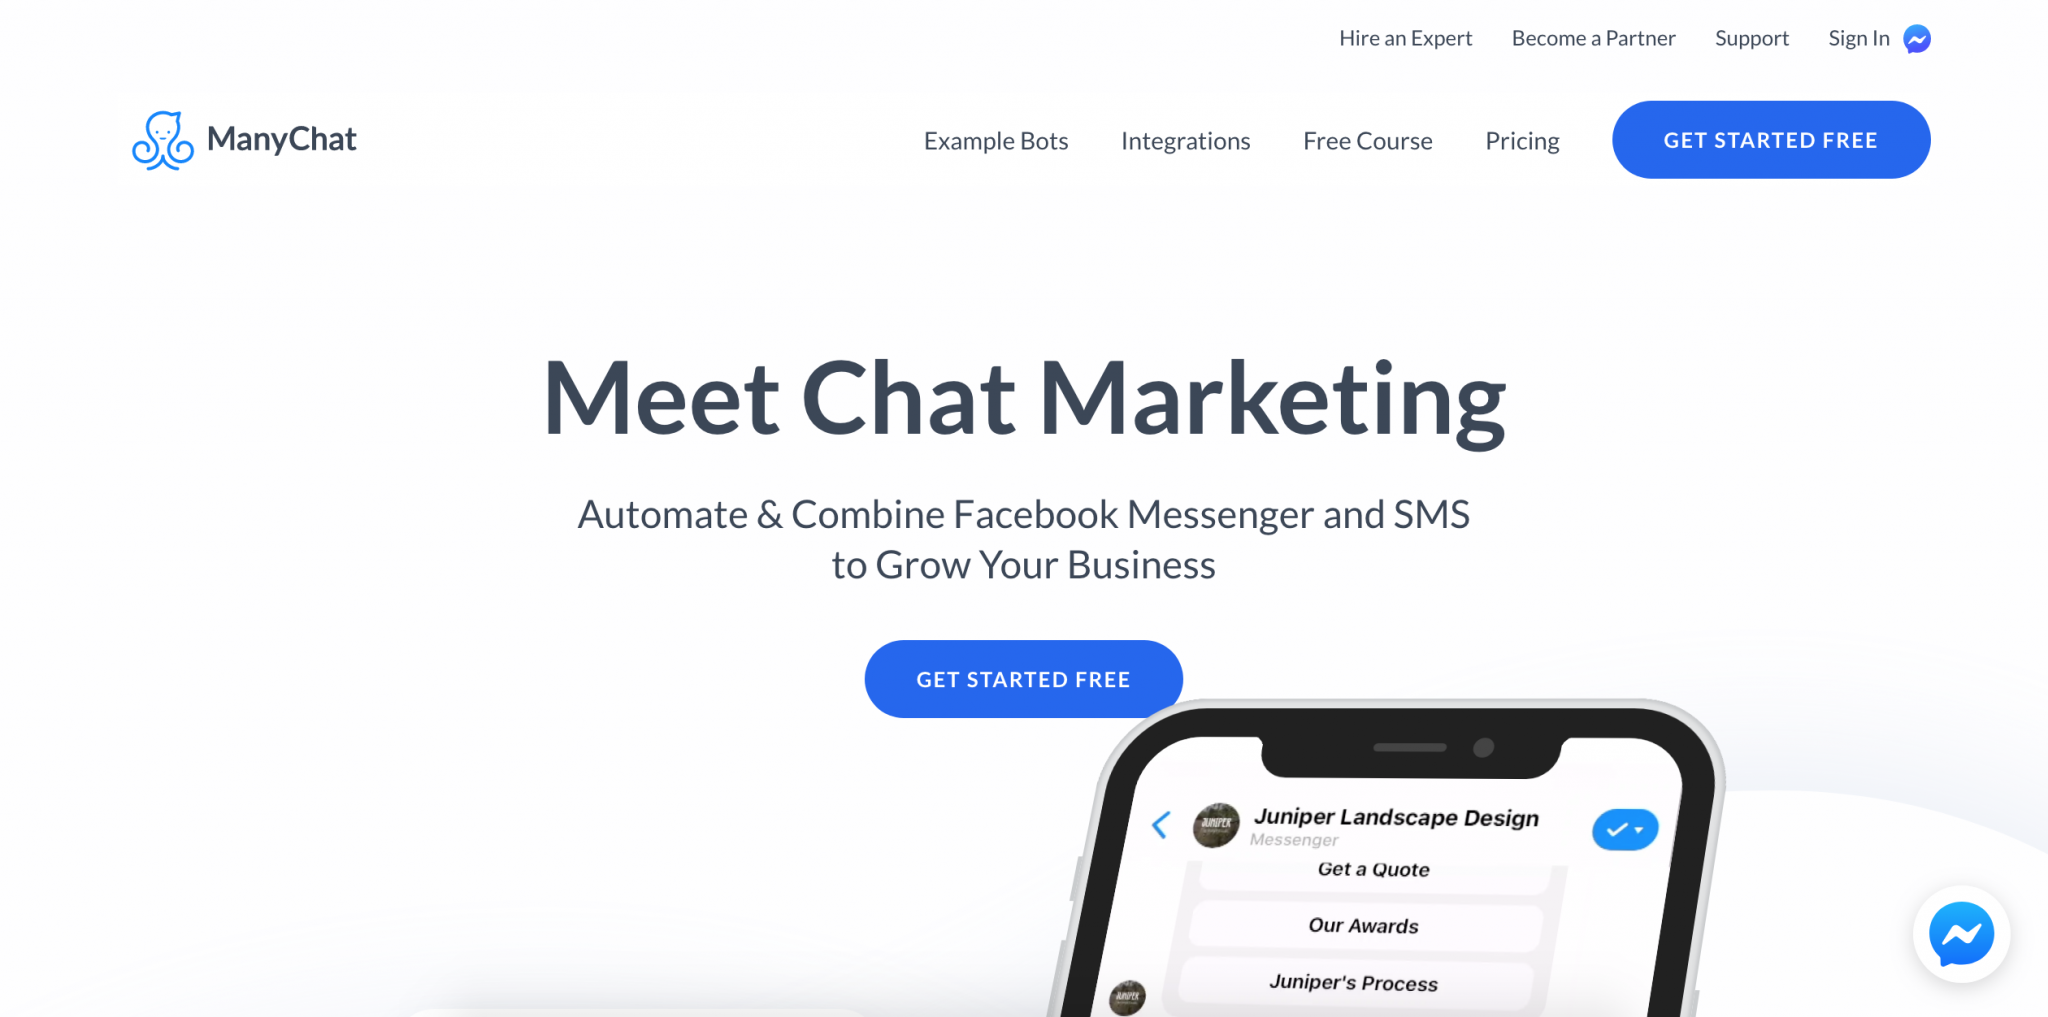 Best B2B Lead Generation Tool - ManyChat